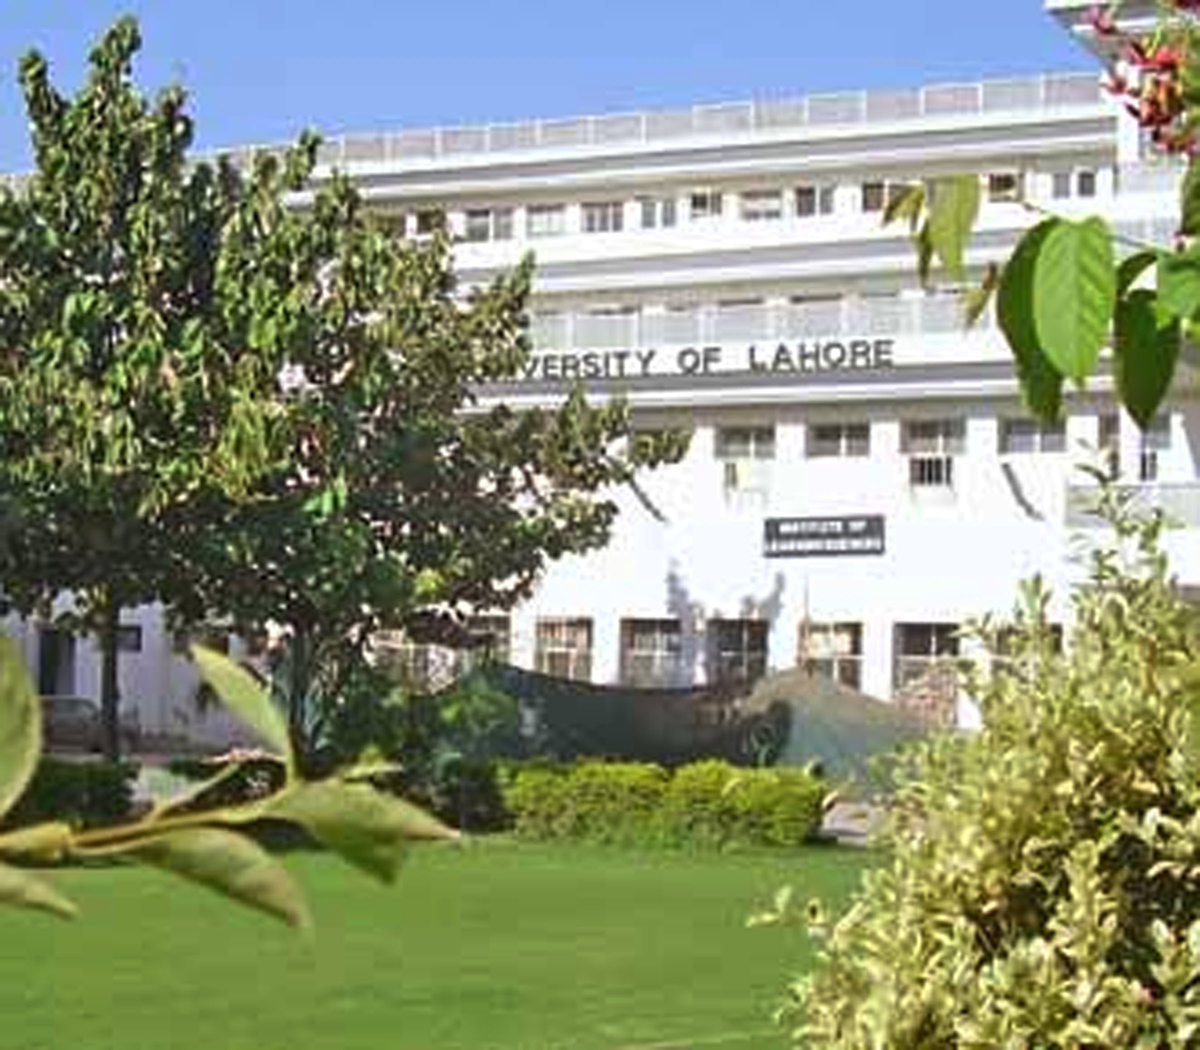 The University of Lahore, Lahore (Main Campus) logo